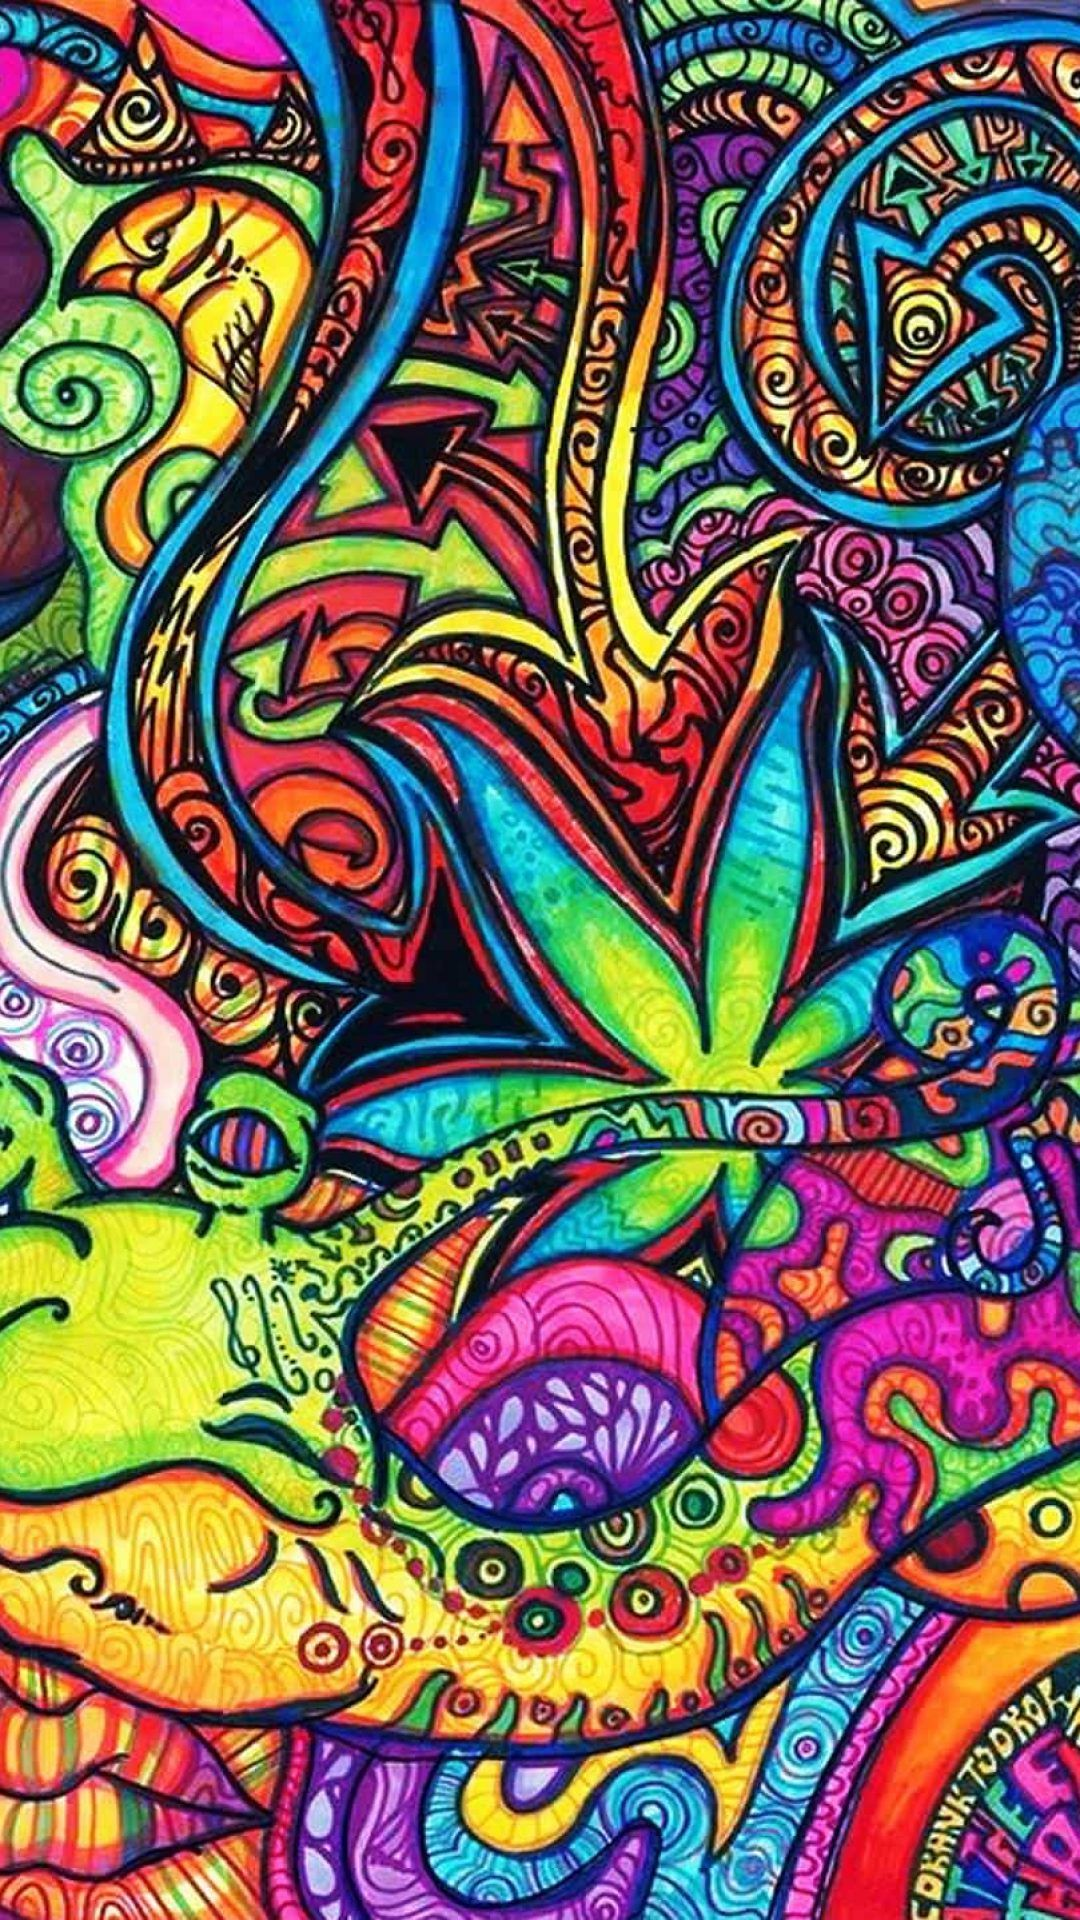 Psychedelic Trippy Backgrounds For Desktop Android iPhone HD | ∂Ѧηї℮ℓ in 2019 | Trippy iphone ...